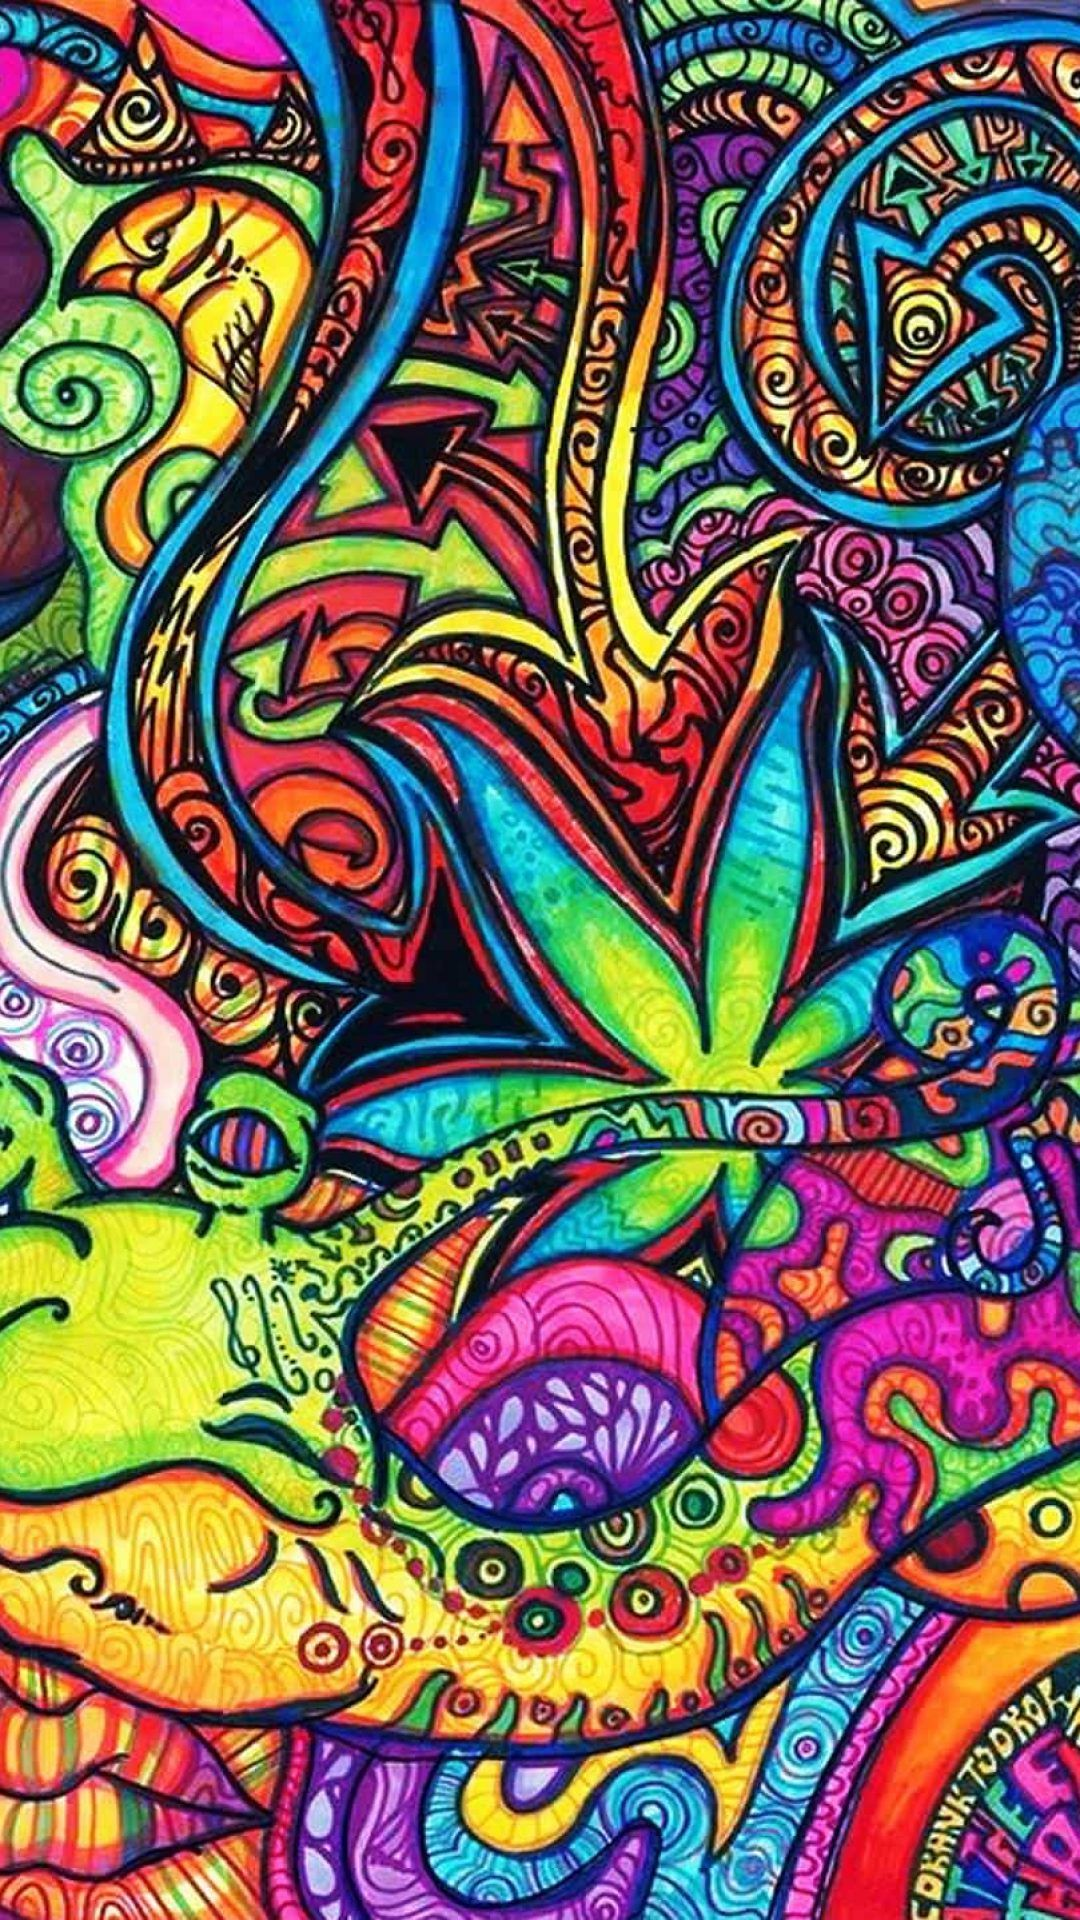 Psychedelic Trippy Backgrounds For Desktop Android iPhone HD | ∂Ѧηї℮ℓ in 2019 | Trippy iphone ...